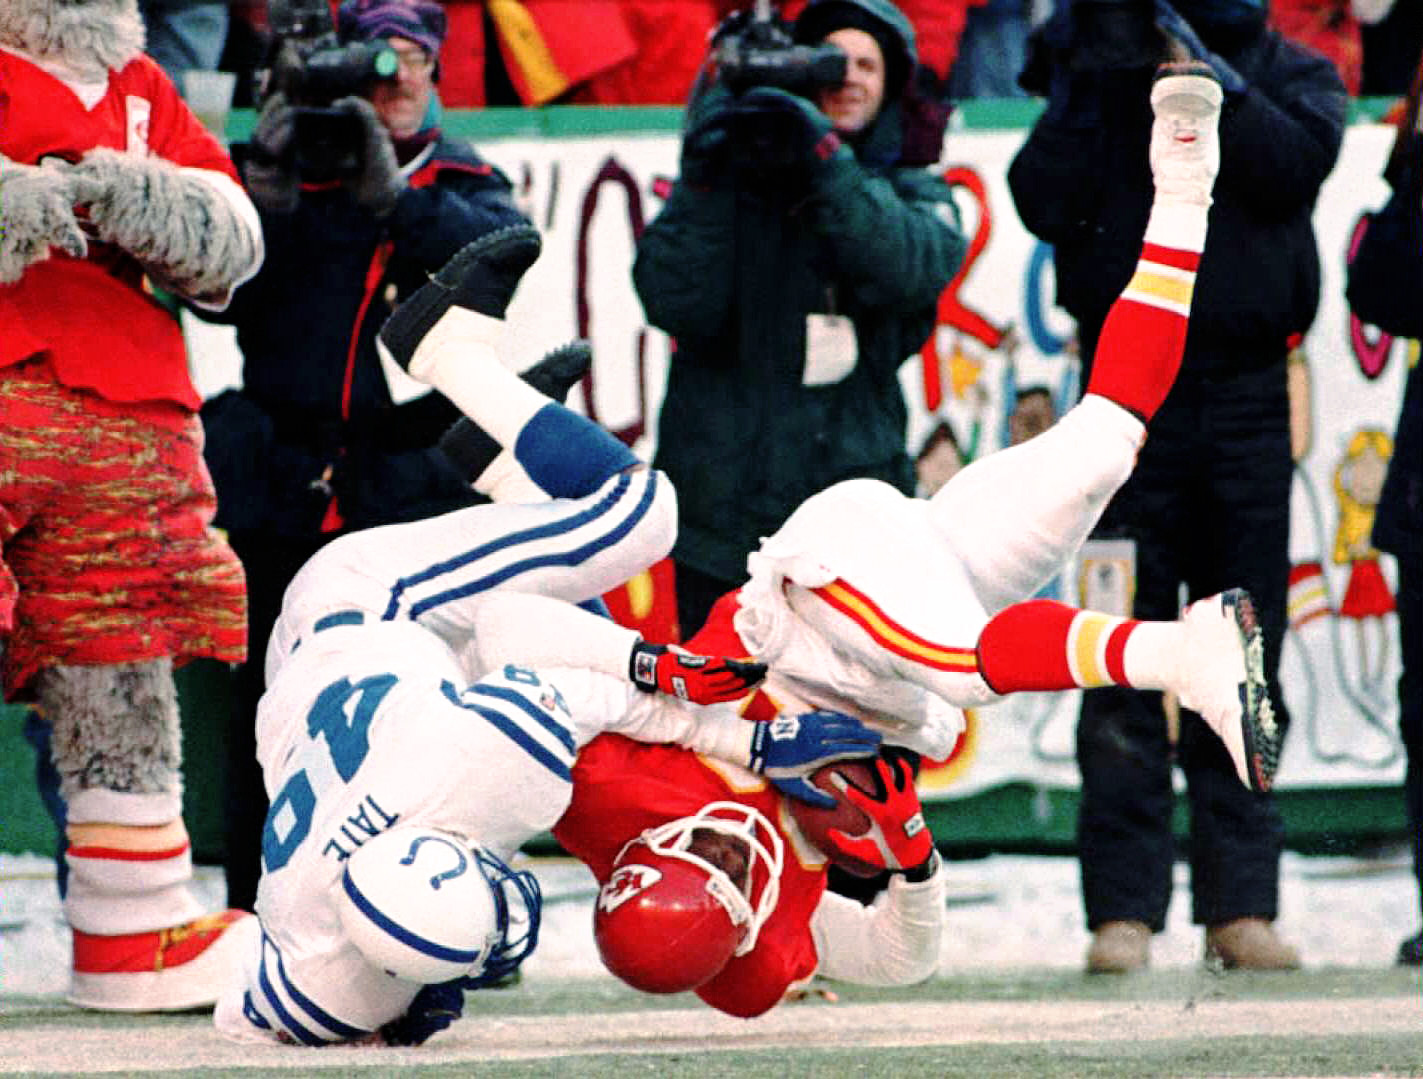 Colts and Chiefs